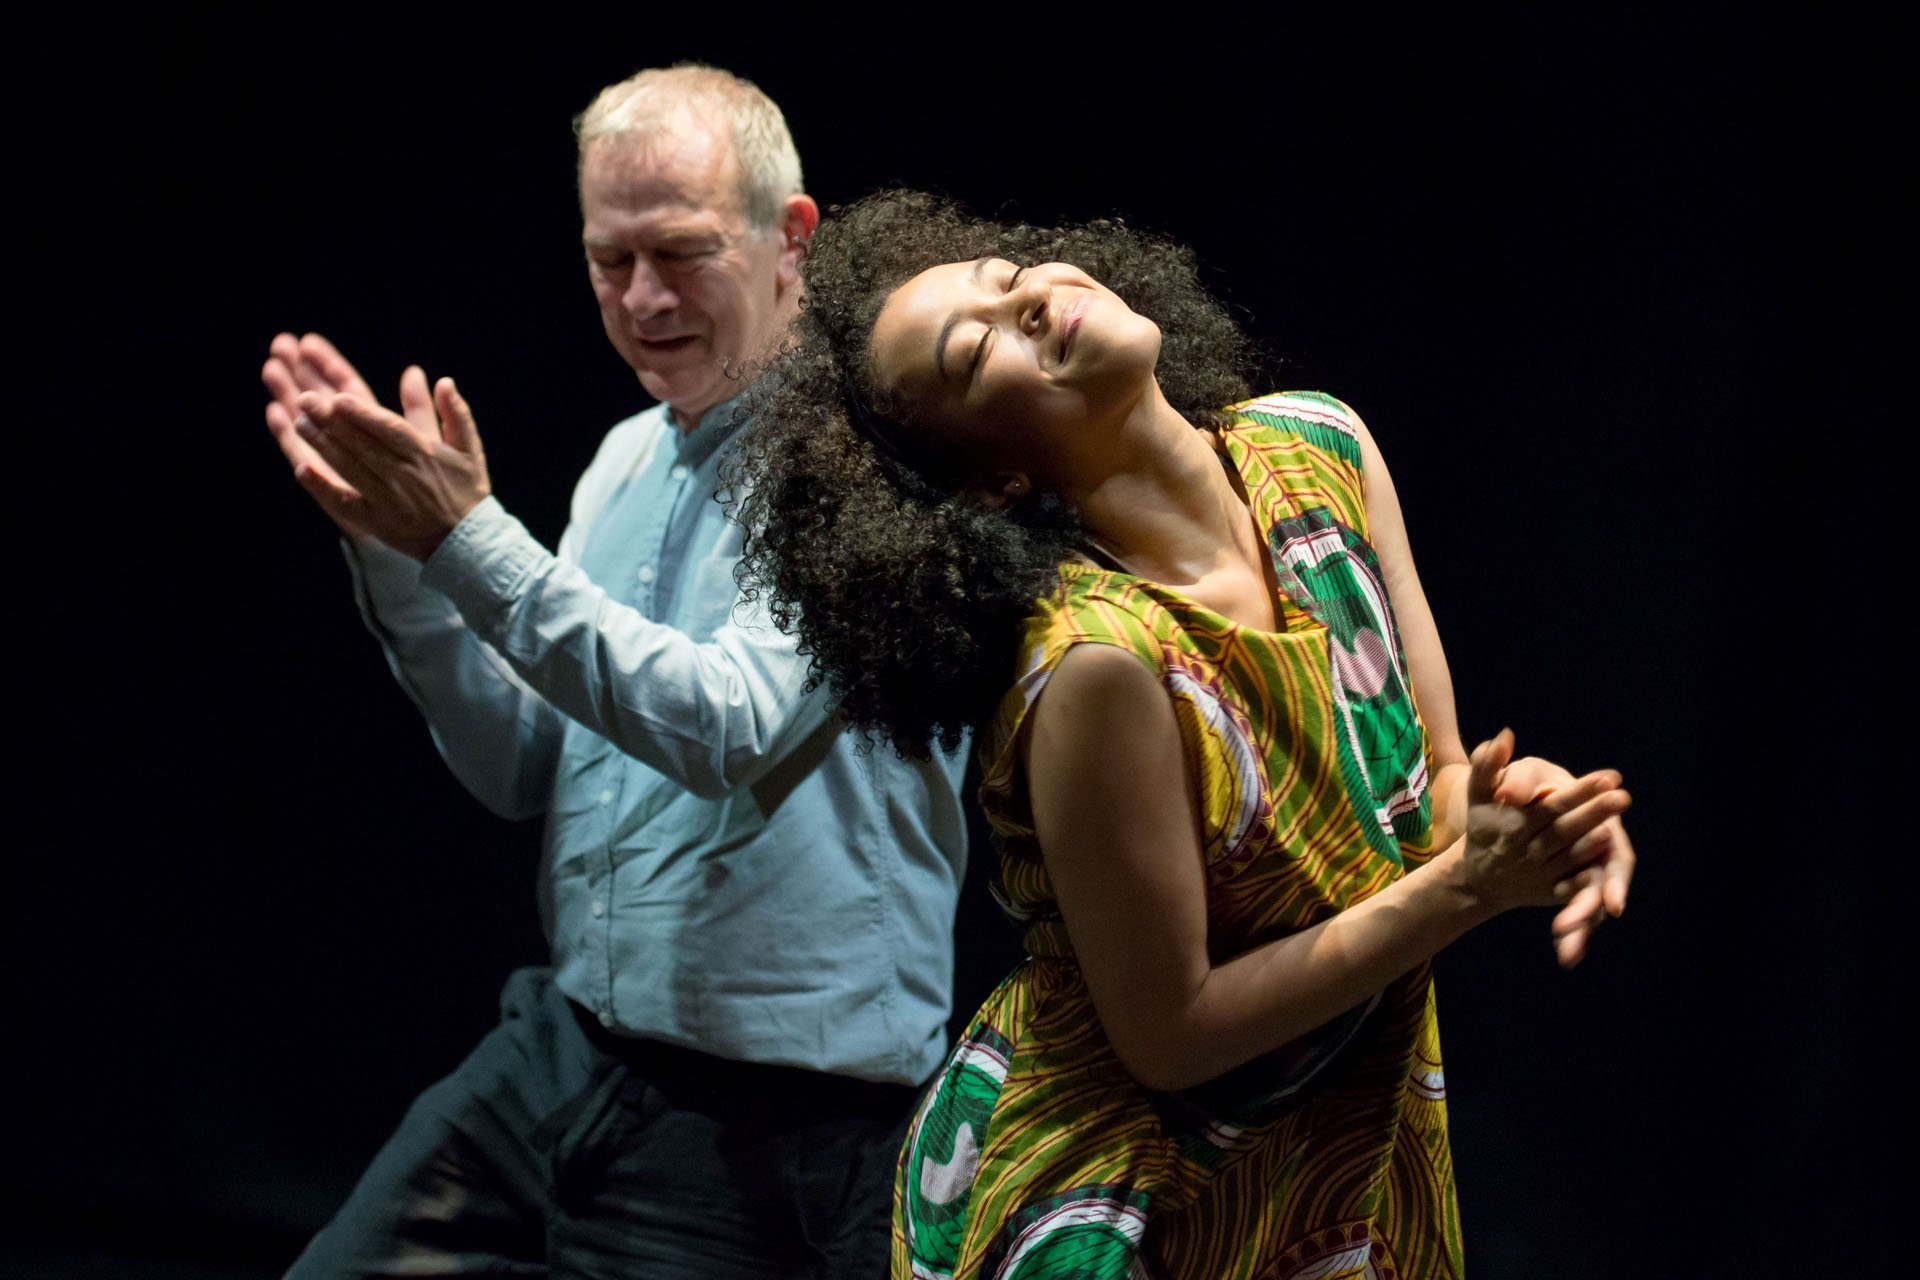 How to Act - National Theatre of Scotland